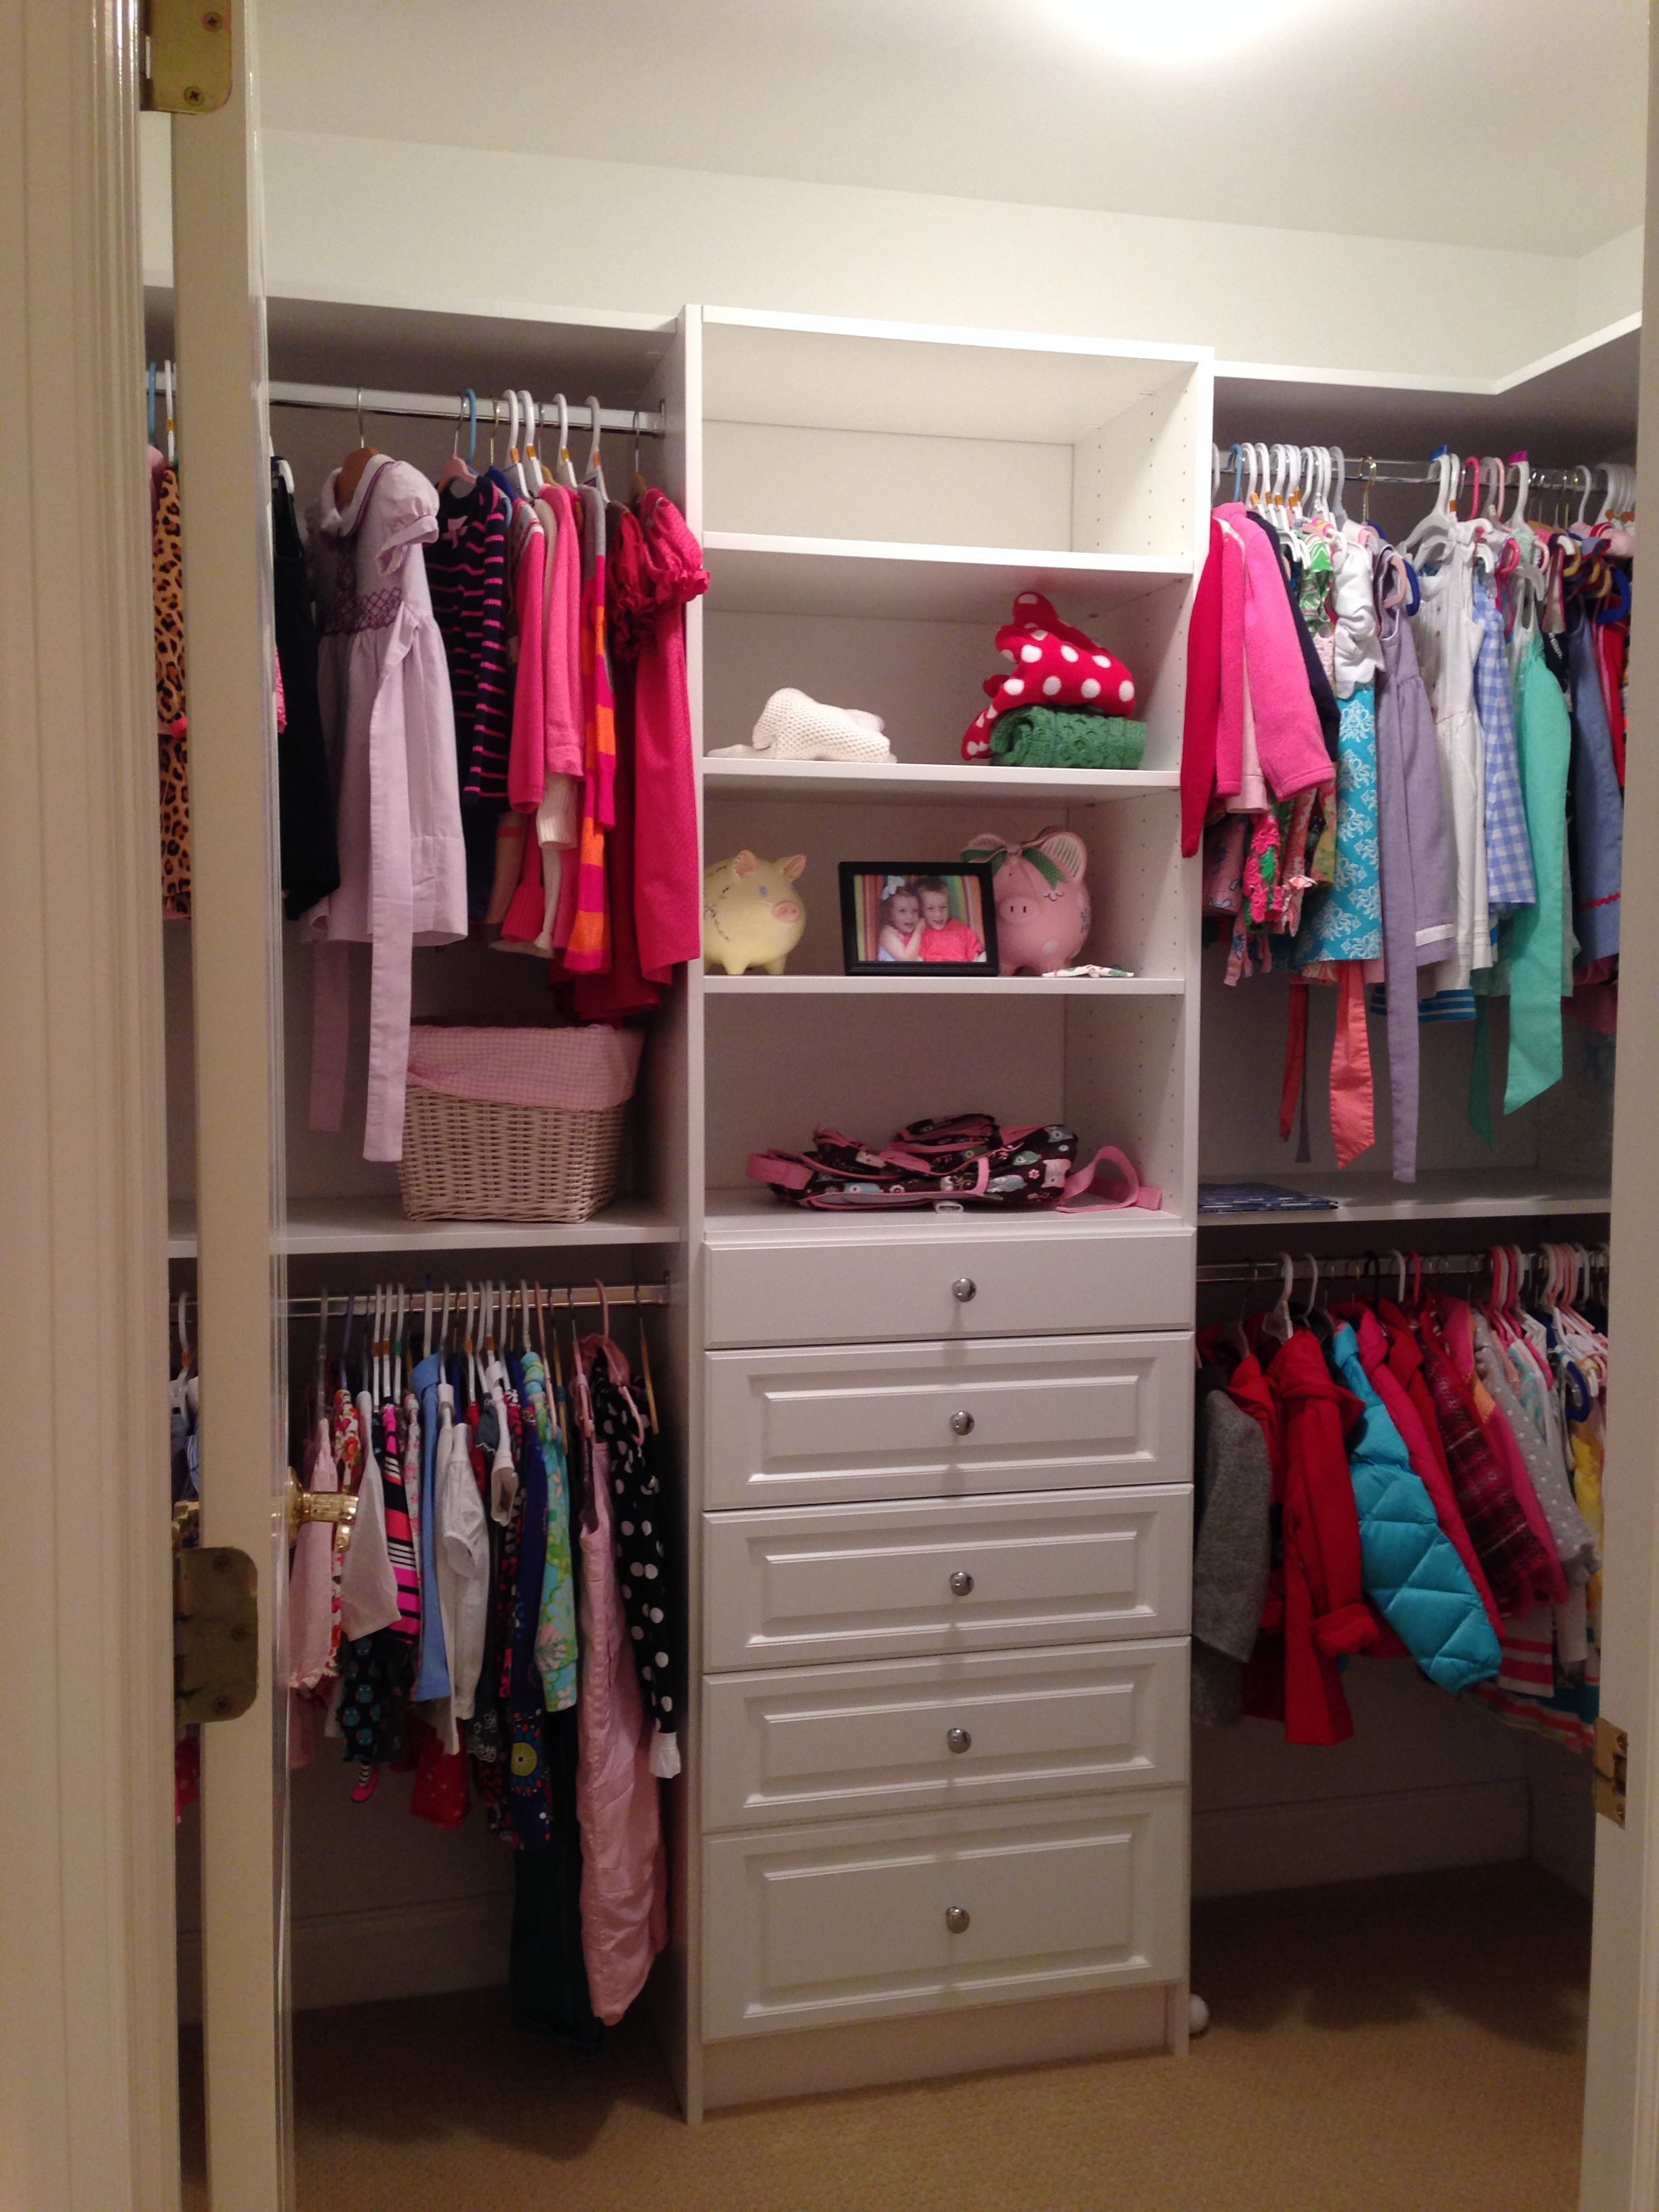 Agreeable Walk In Closet East Aurora Ny And Entrance